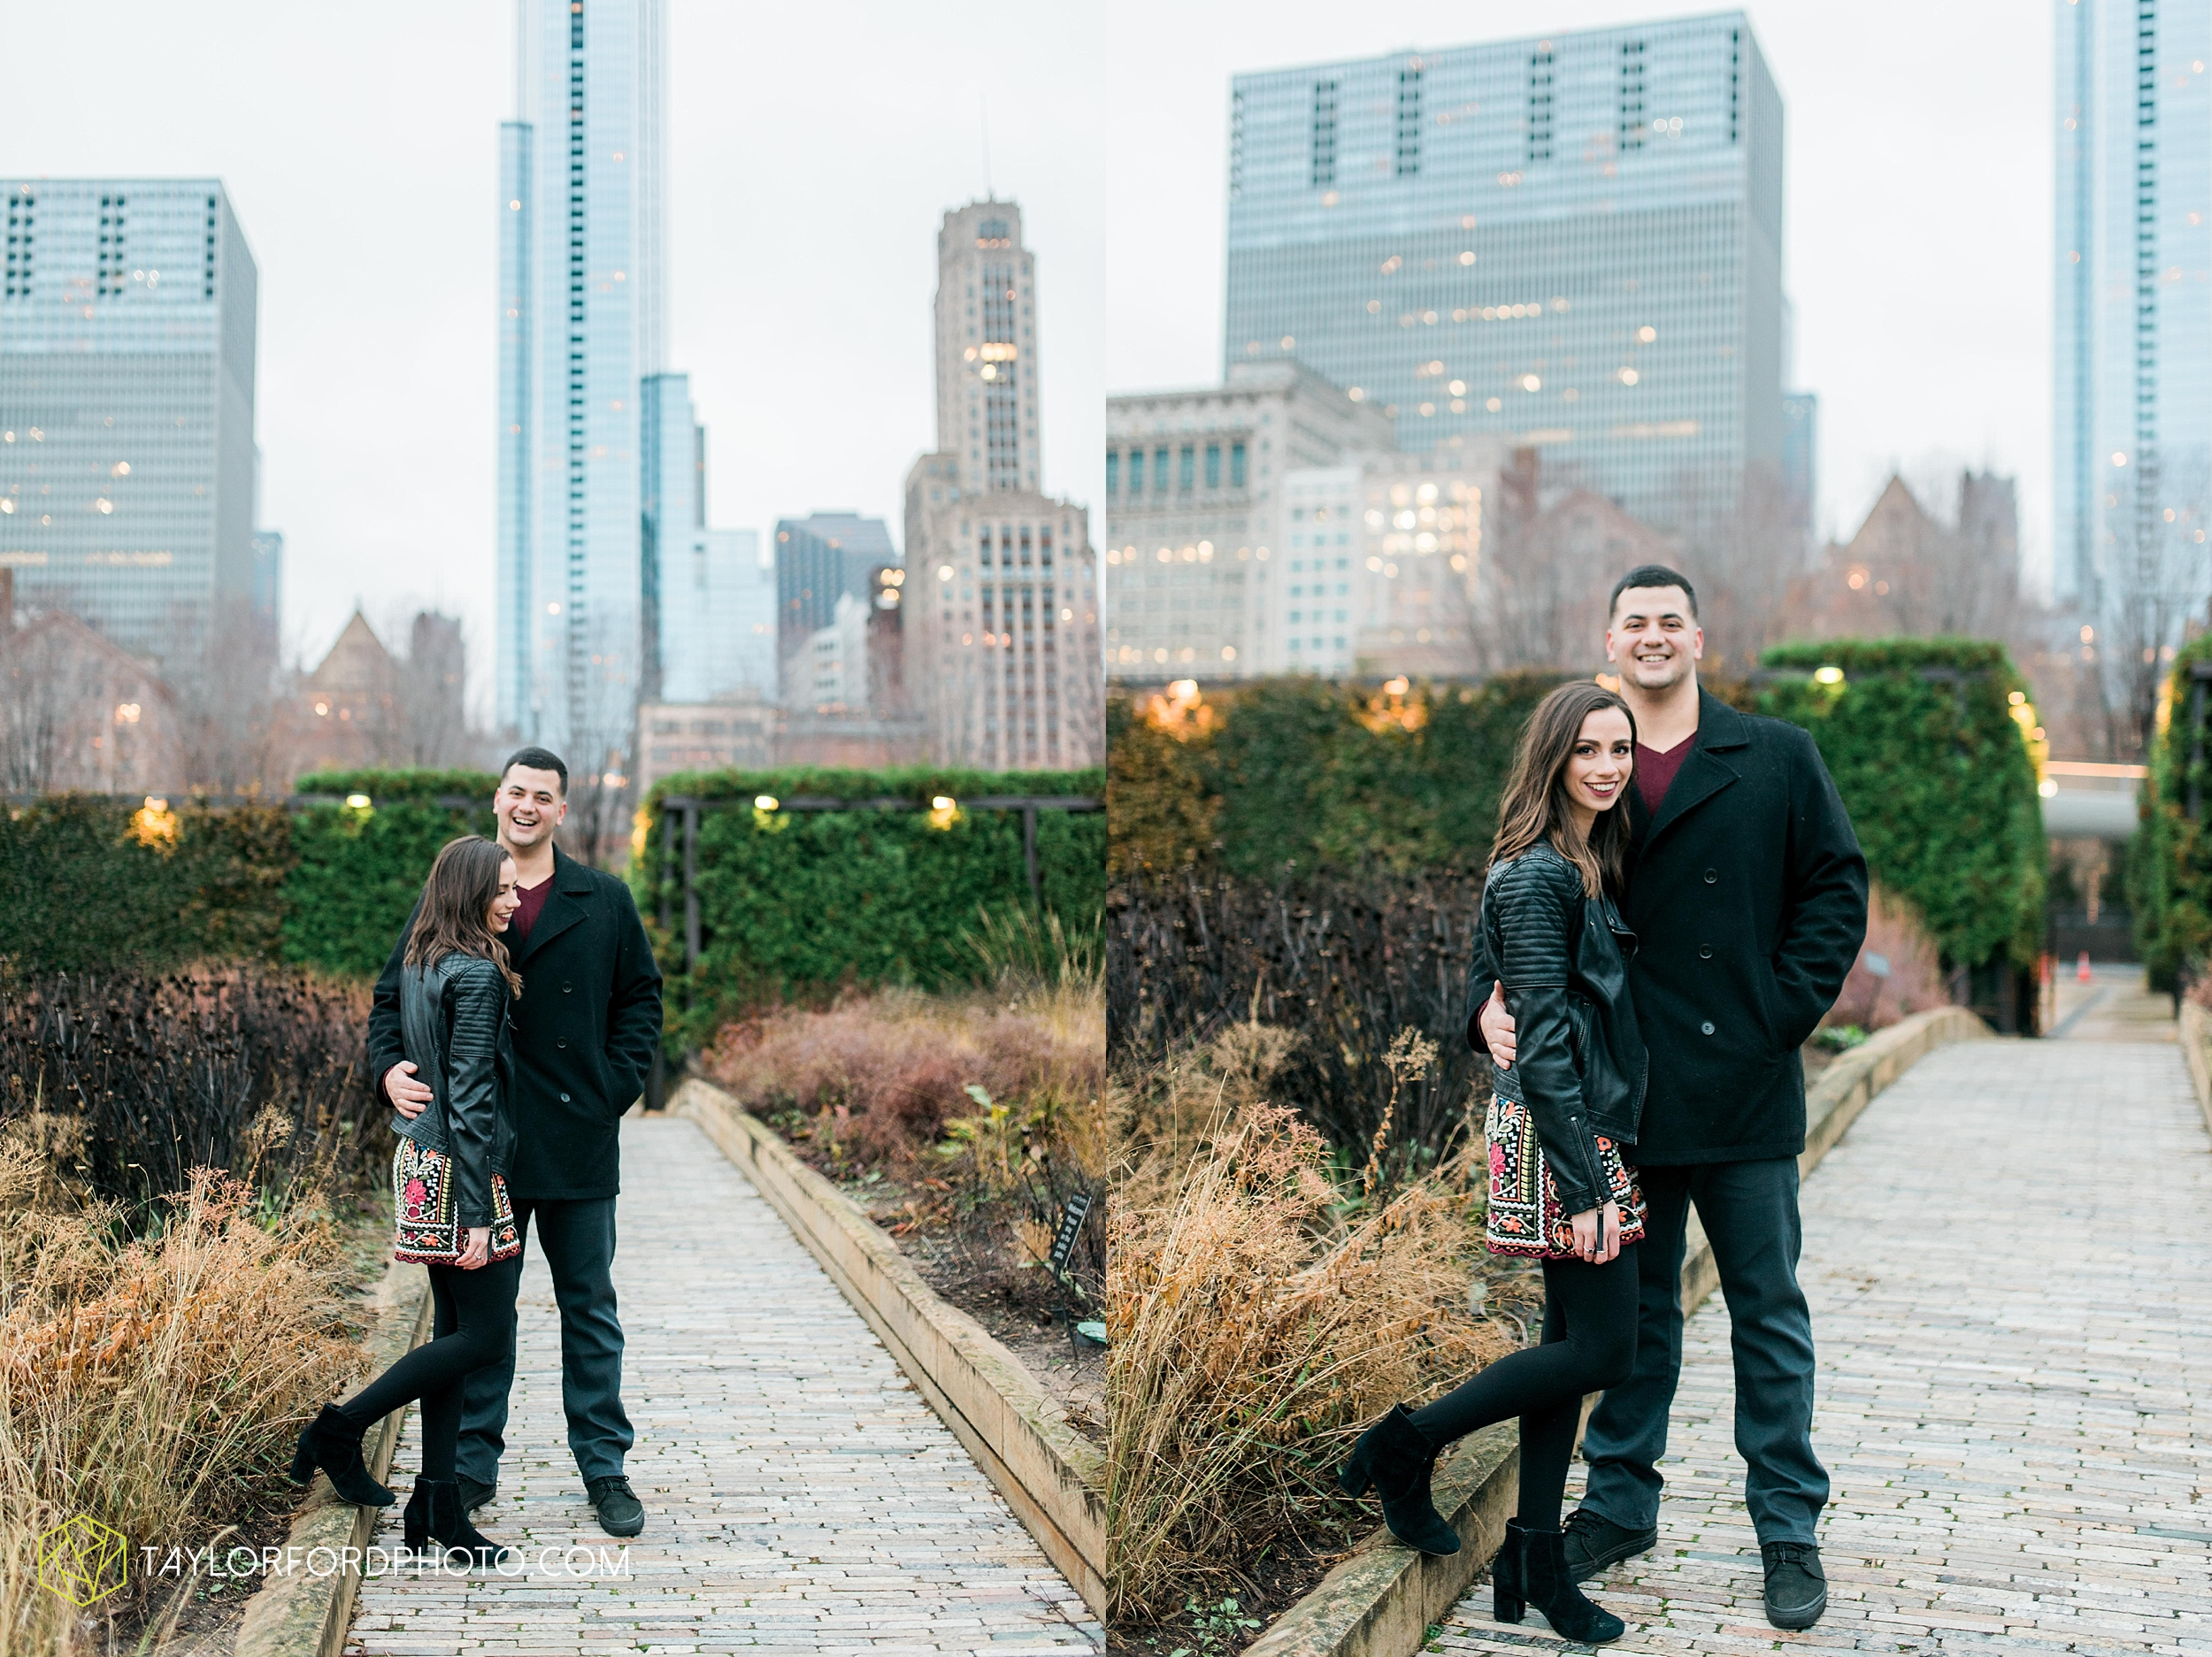 chicago-illinois-engagement-lincoln-park-zoo-downtown-millenium-park-cloud-gate-photographer-Taylor-Ford-Photography_6051.jpg